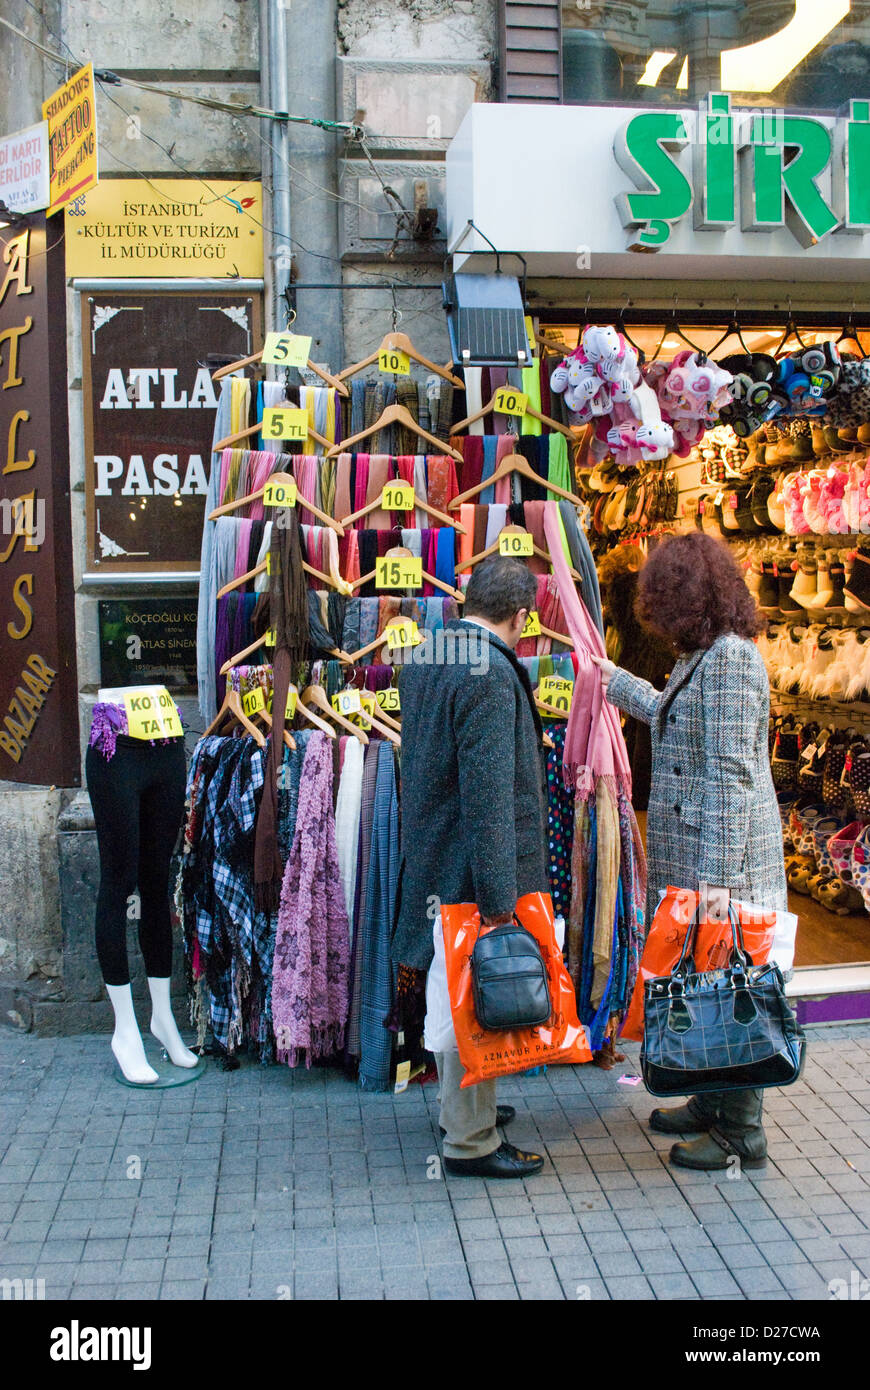 Shoppers outside clothes shop in Istanbul, Turkey Stock Photo